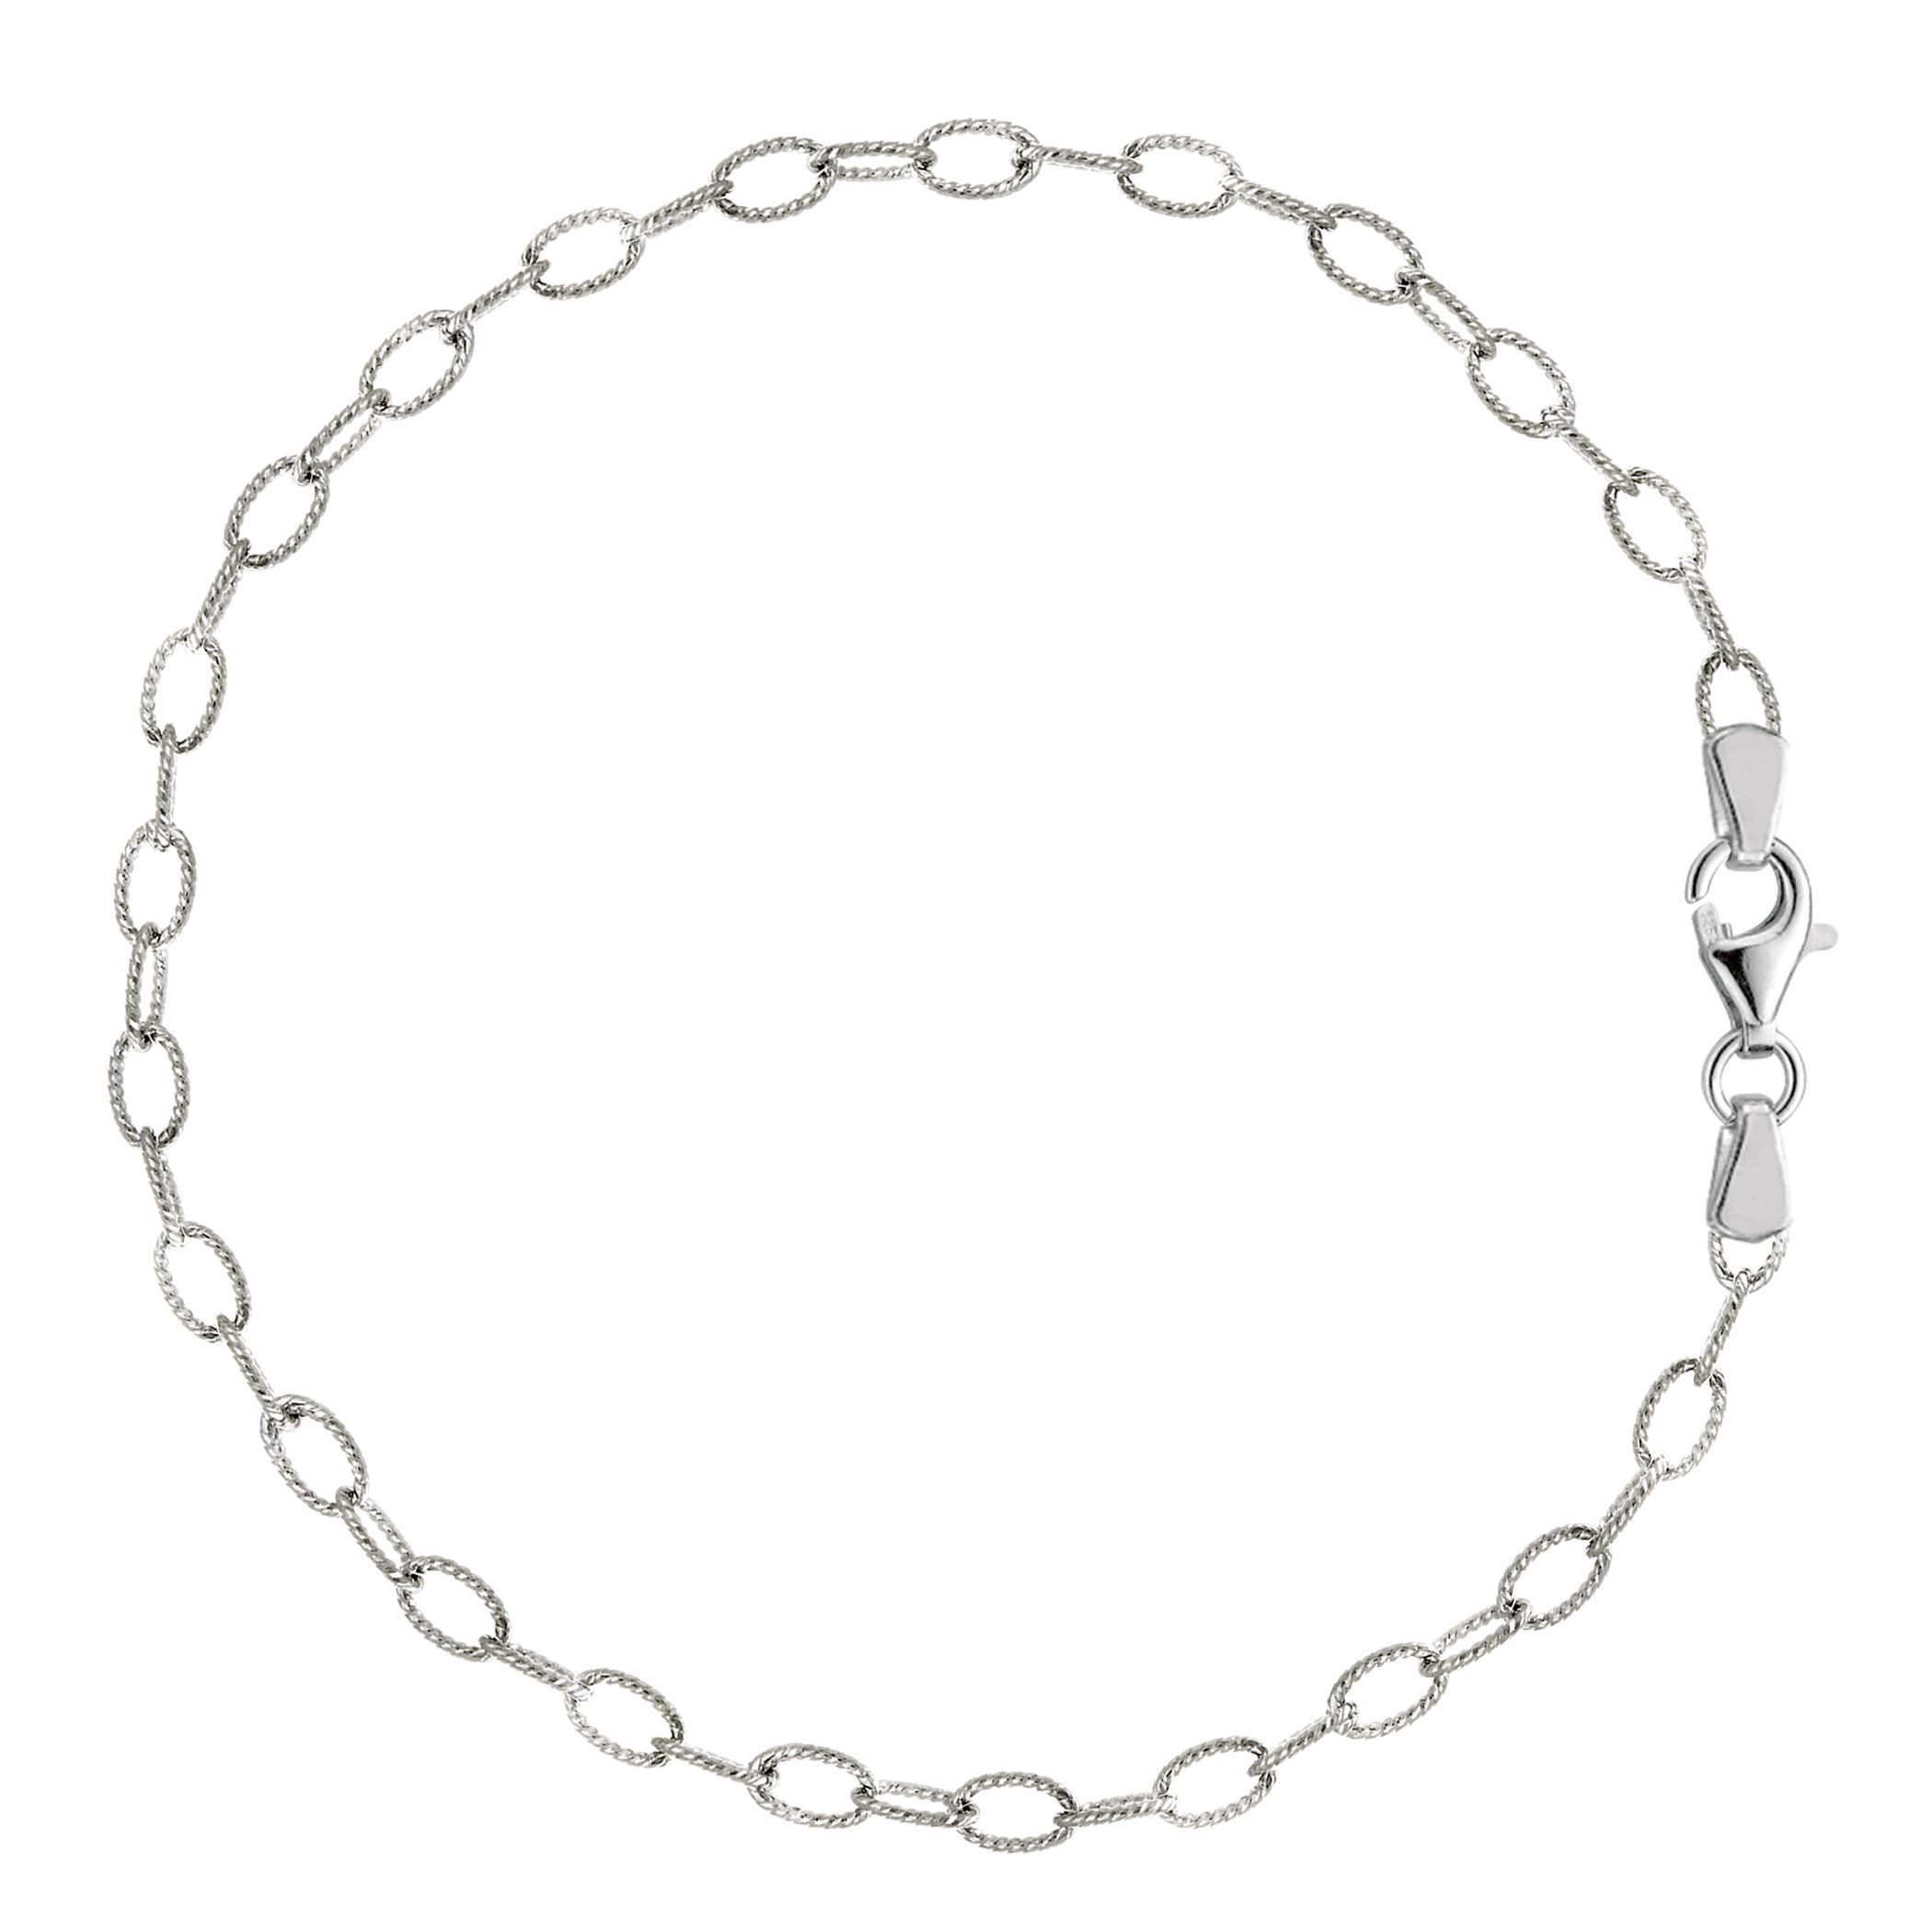 Oval Shaped Twisted Cable Link Anklet In Sterling Silver, 10″